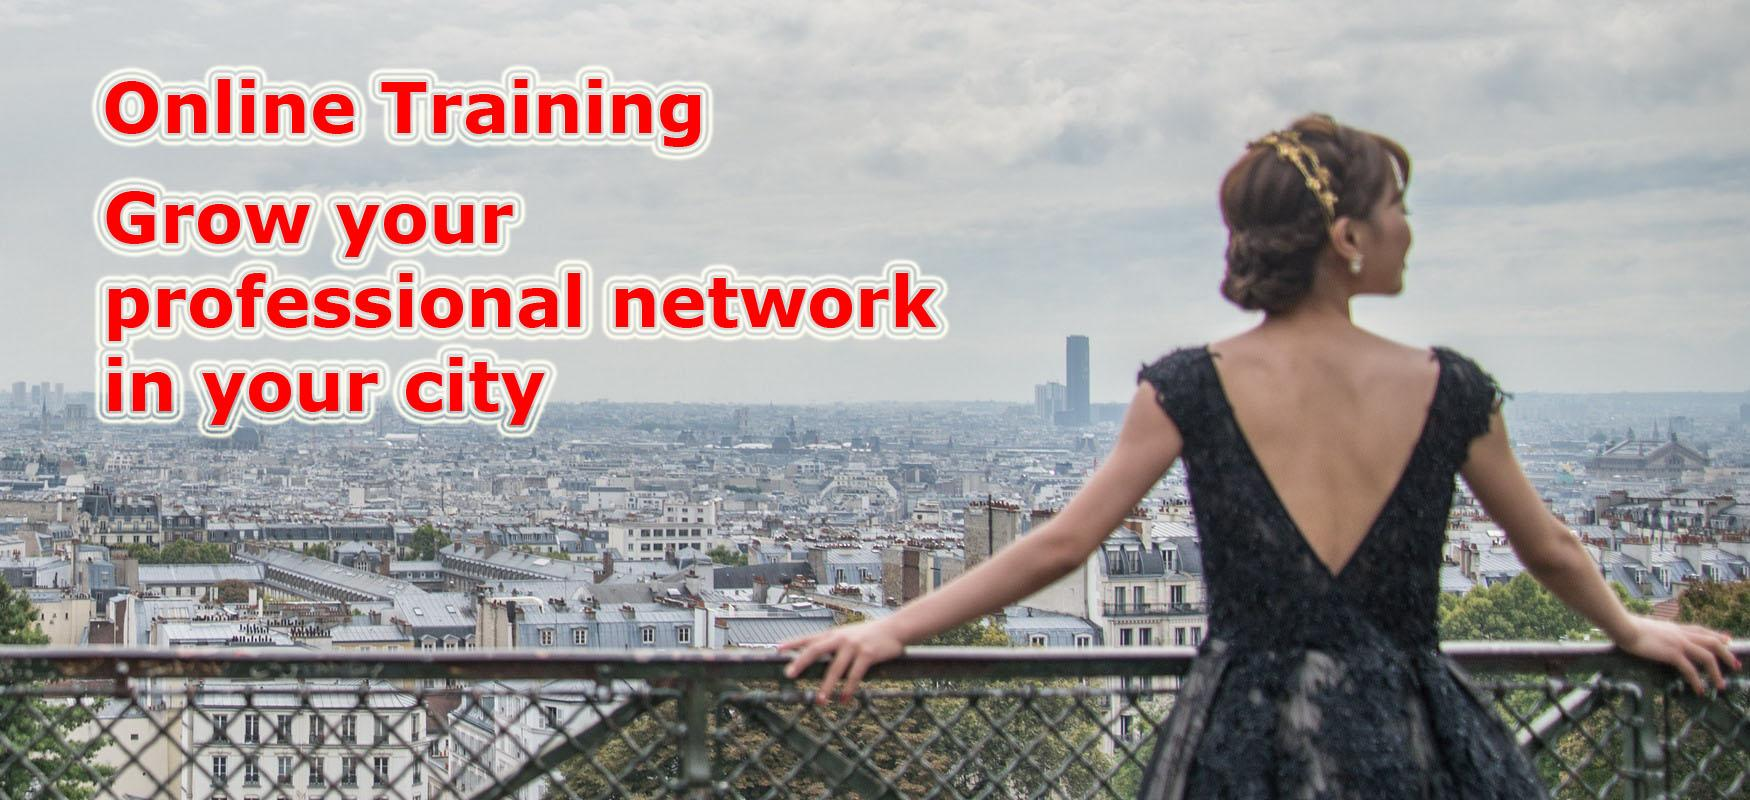 Online Training: Grow your professional network in your city